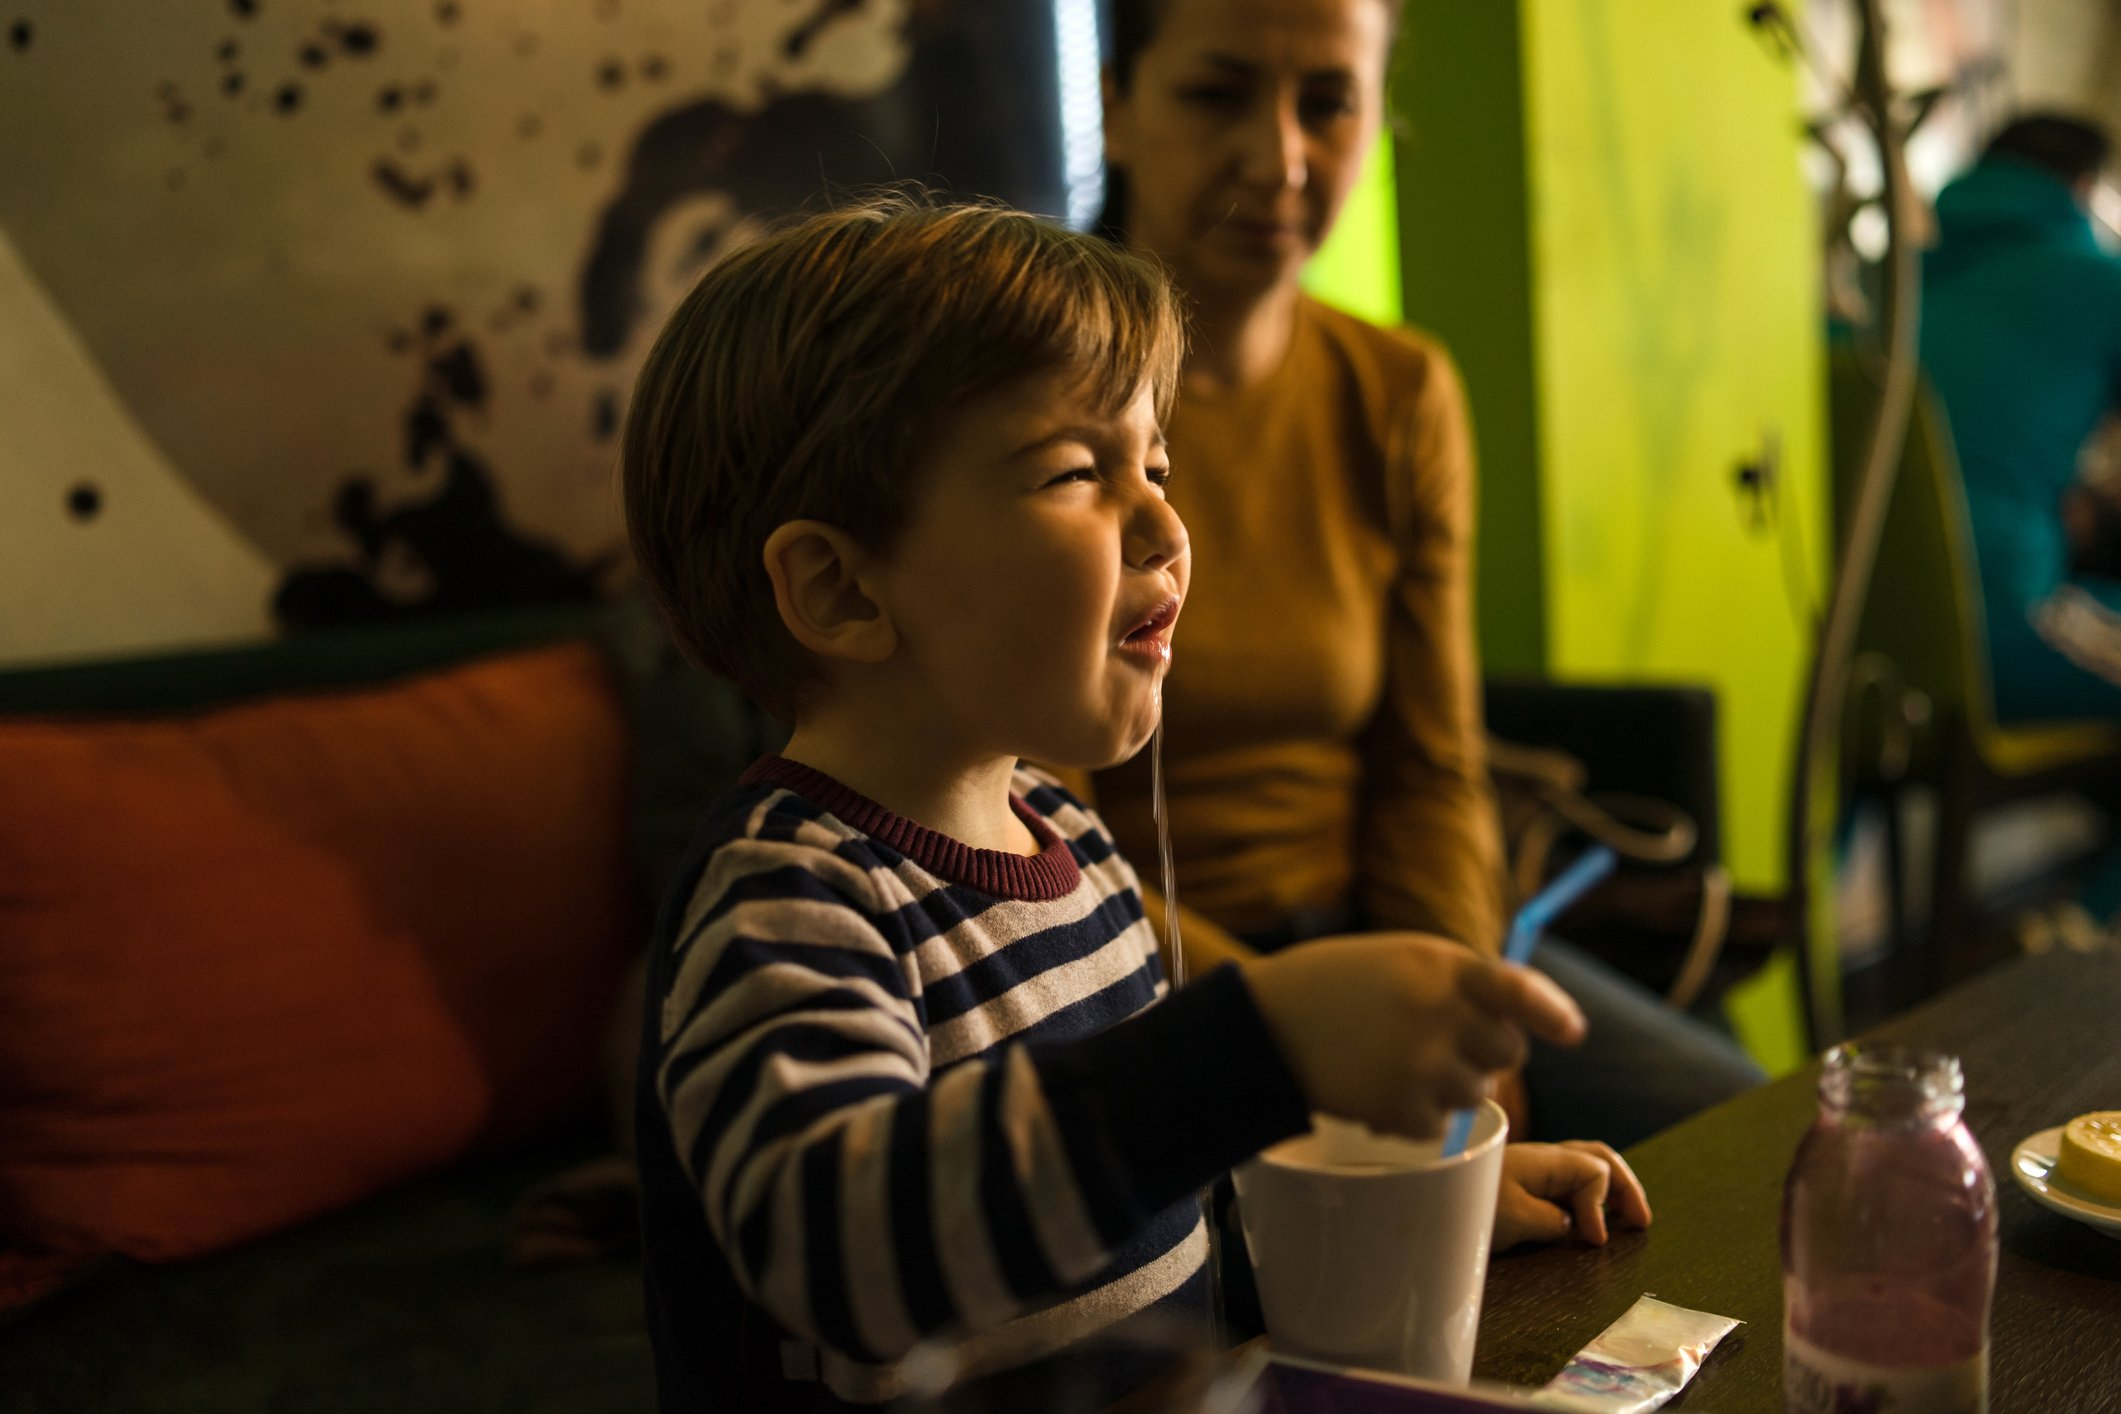 Mother watches impatiently as her baby boy bawls in a restaurant | Photo: Getty Images